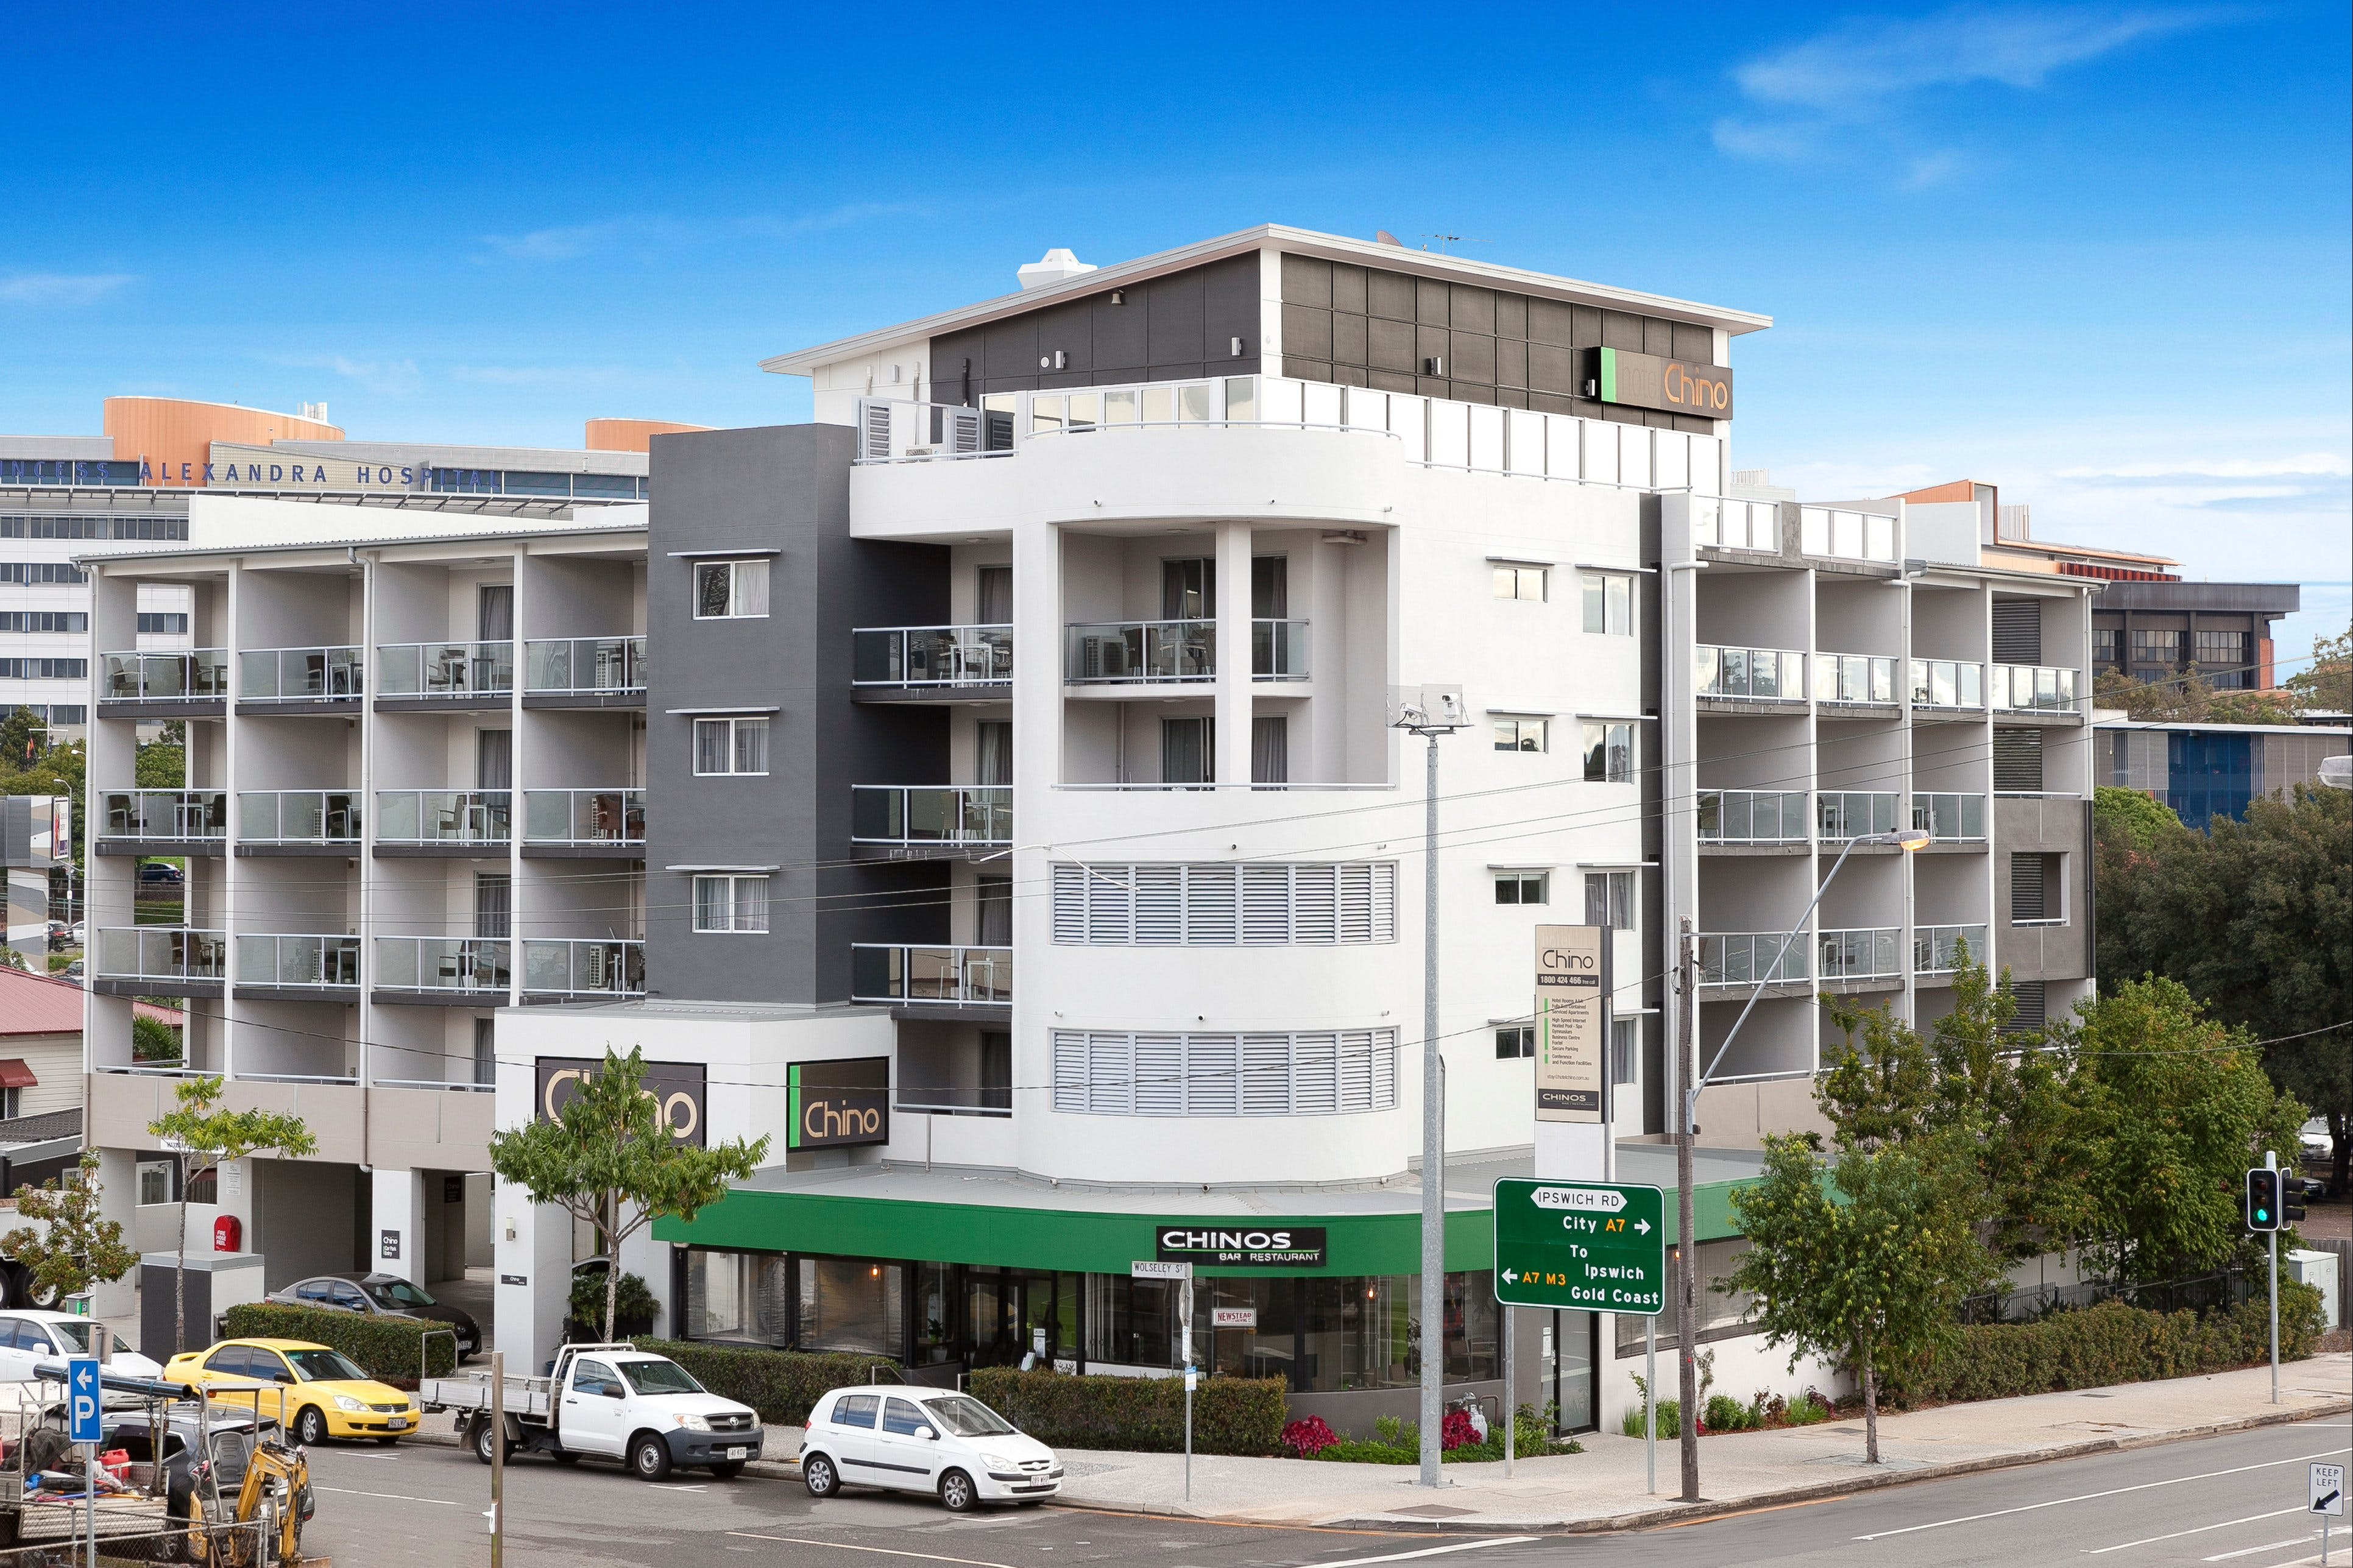 Hotel Chino - Accommodation Coffs Harbour